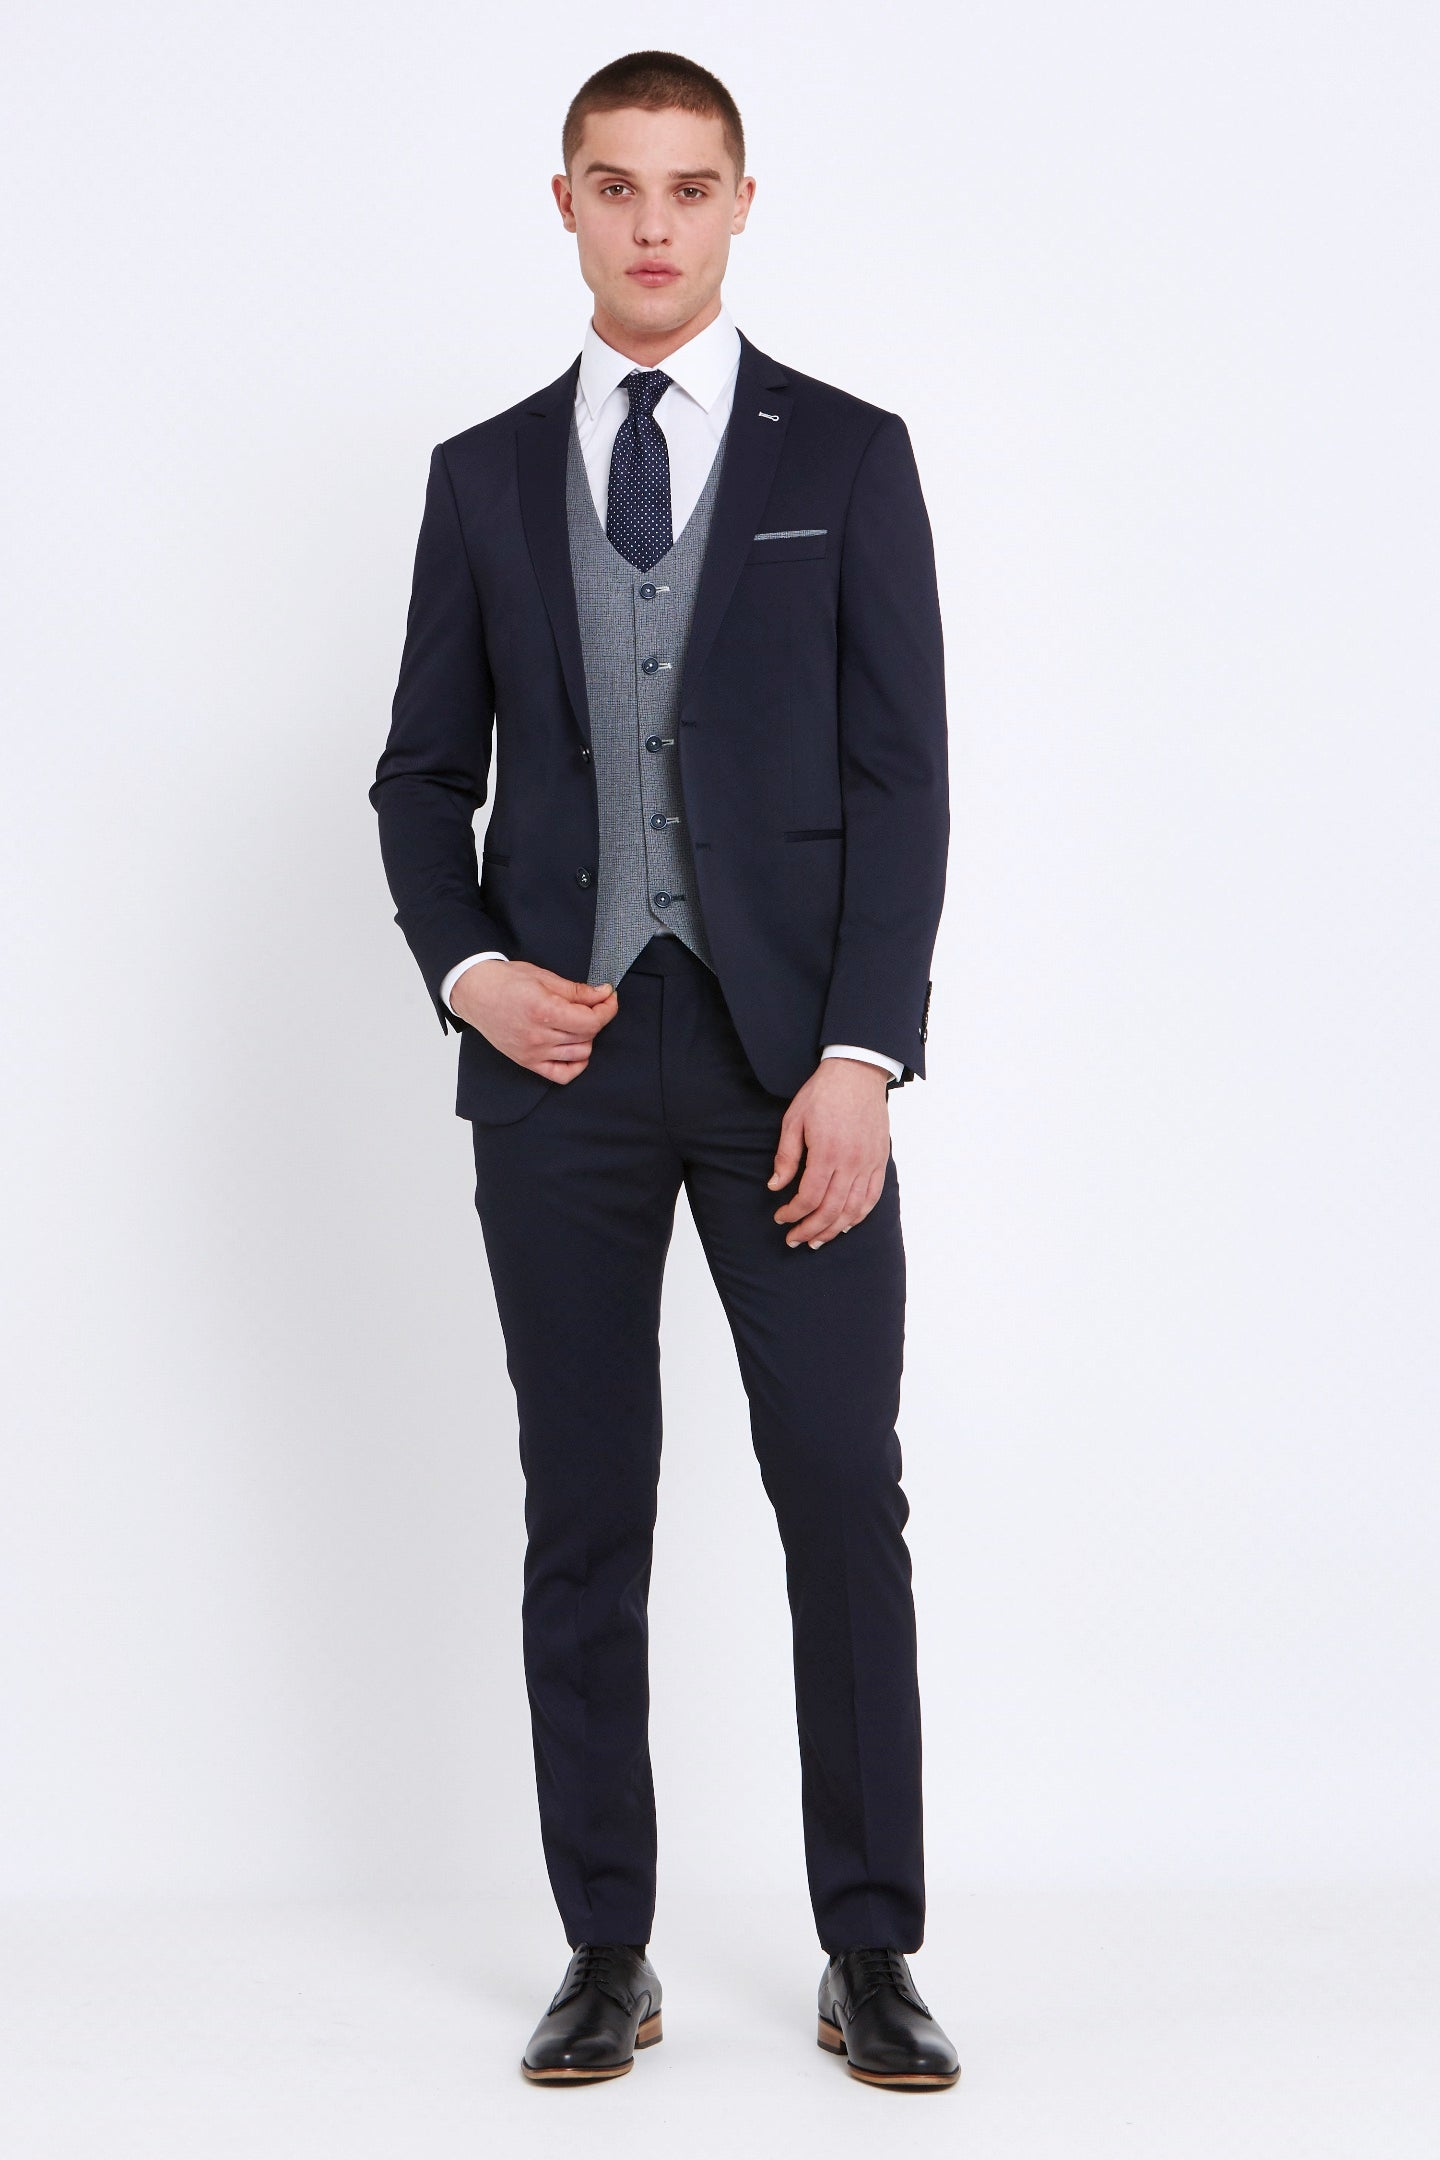 Louis Navy Suit